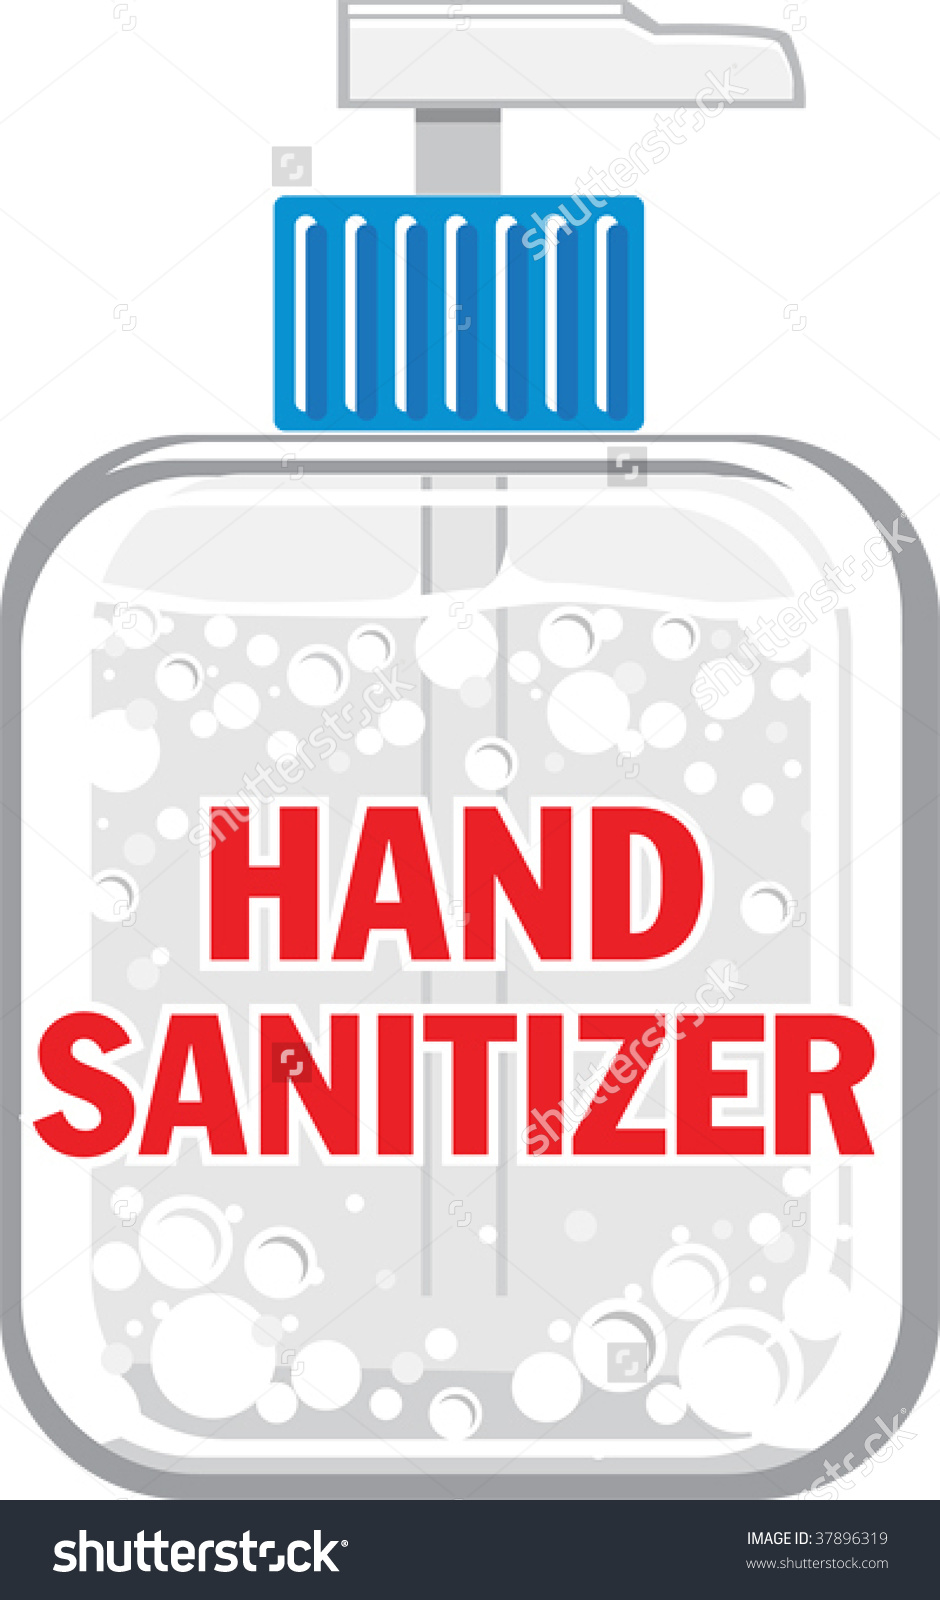 Free clipart hand sanitizer.